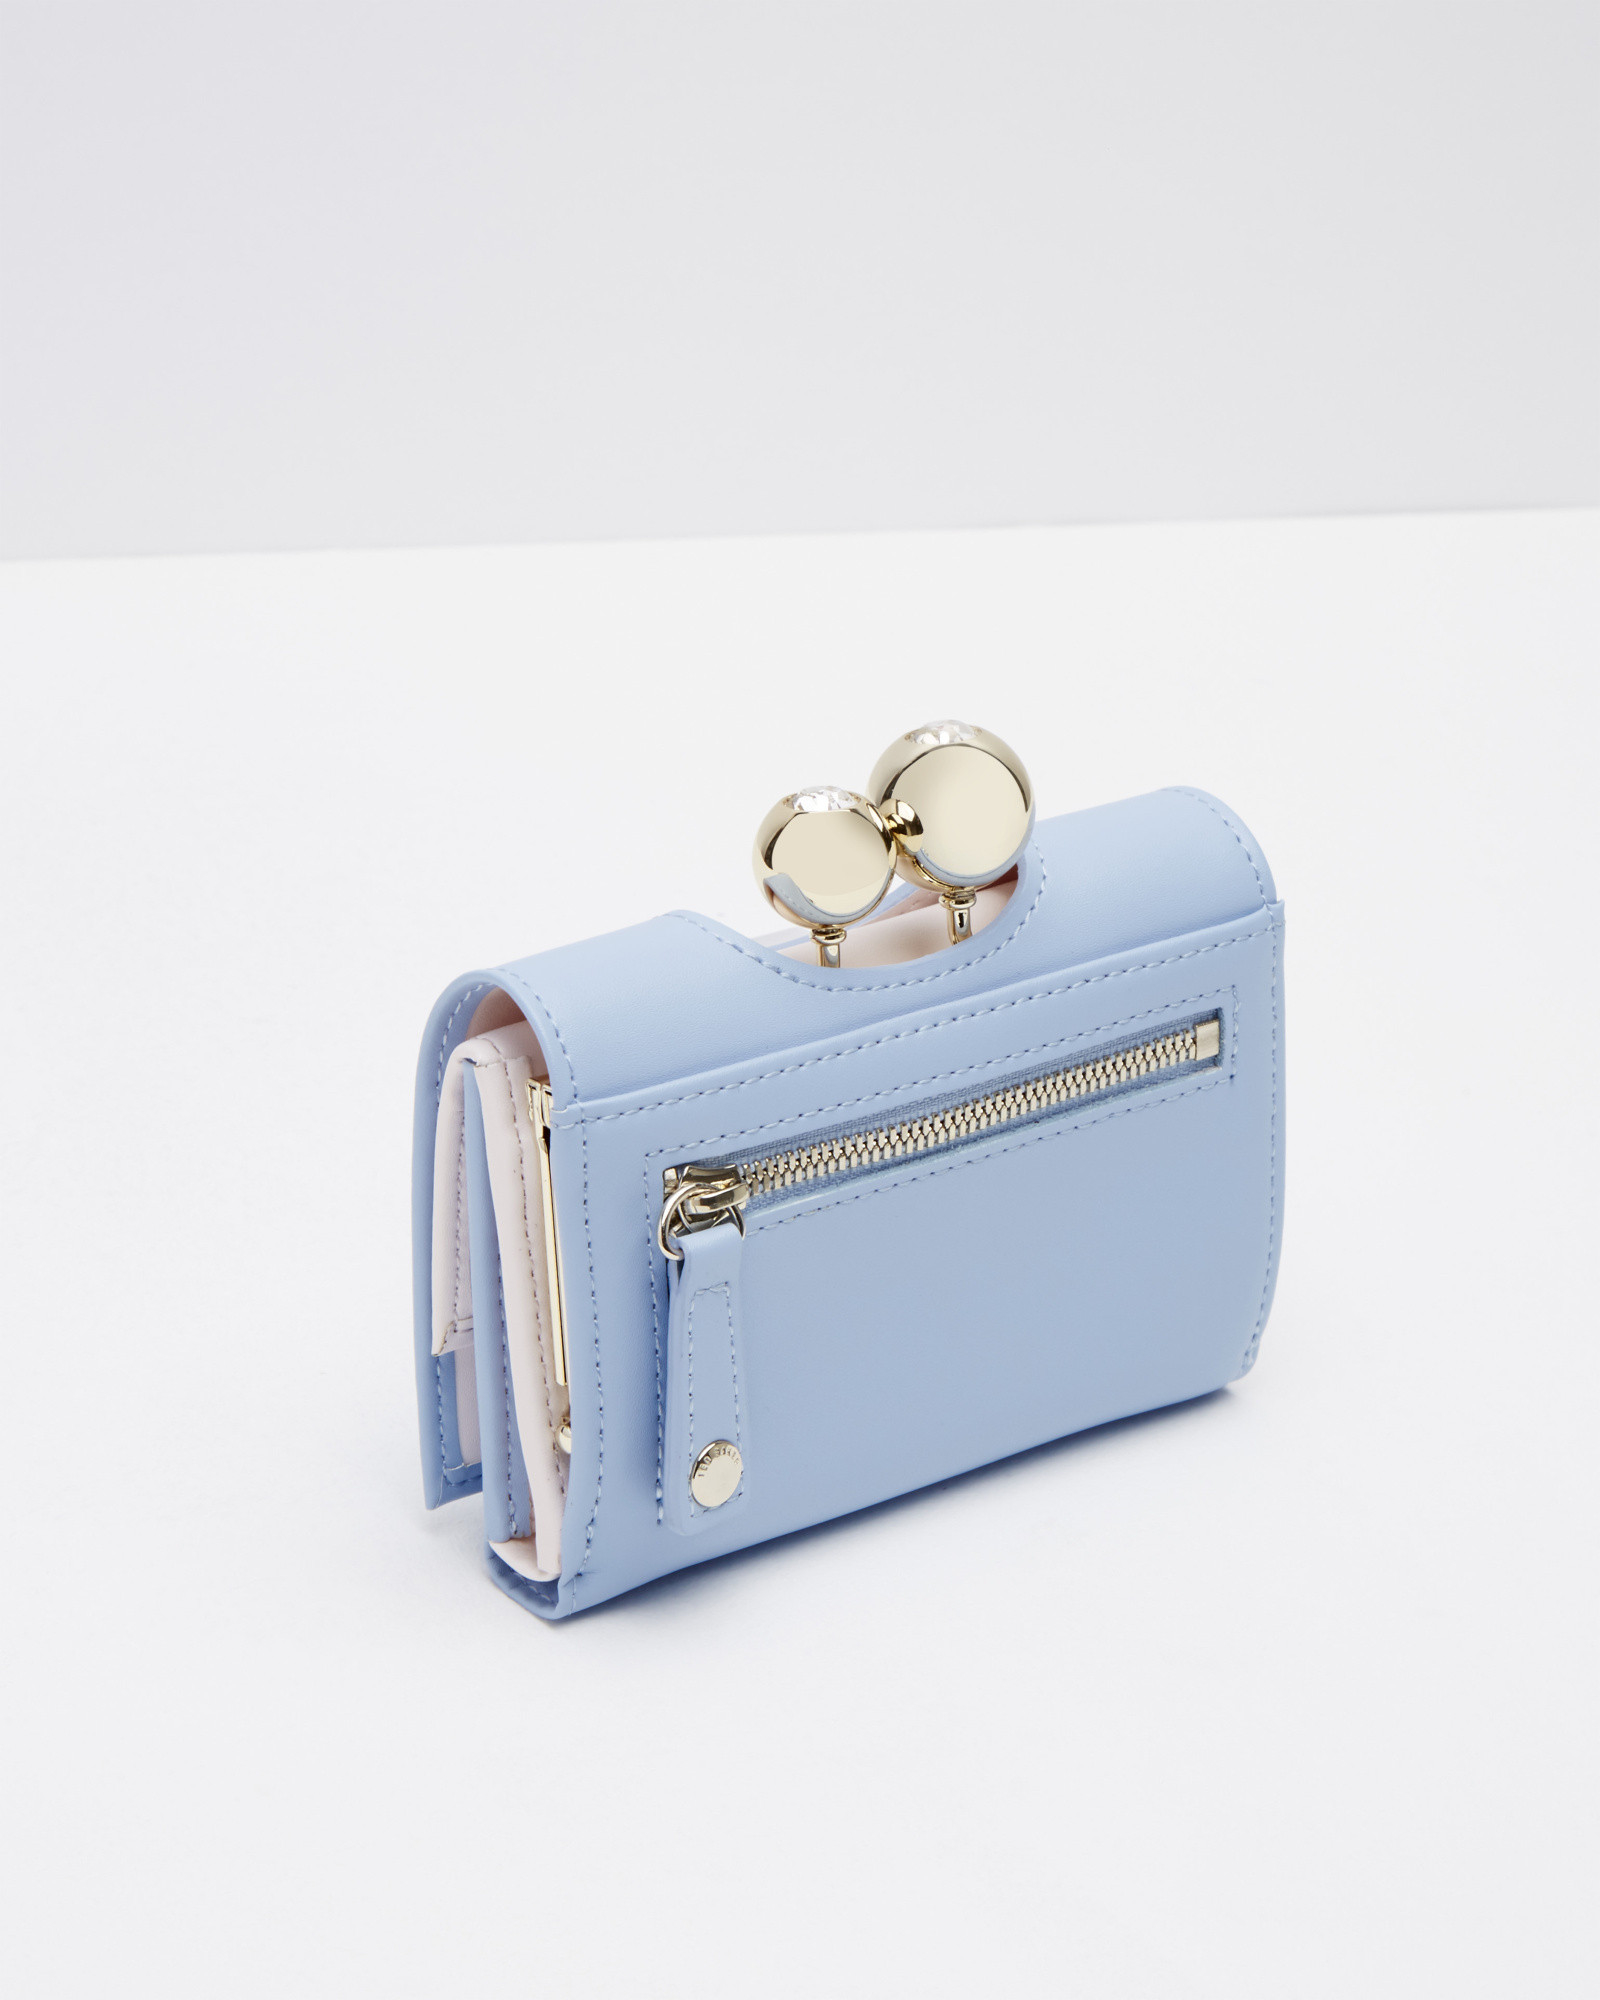 c995774a2 Ted Baker Small Patent Purse With Pearl Crystal Bobble - Best Purse ...